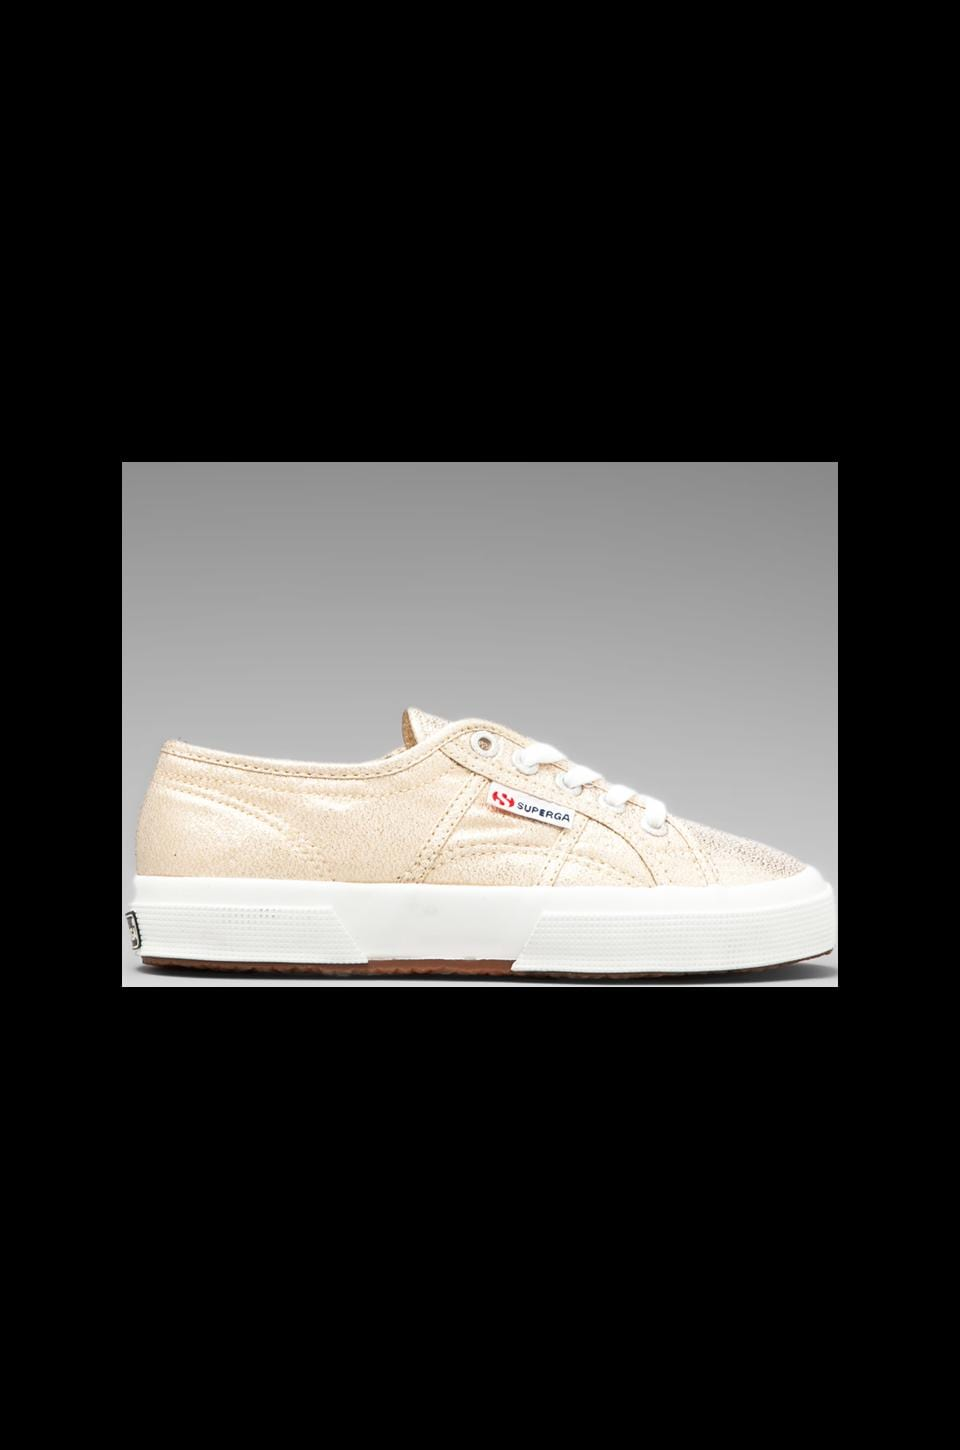 Superga 2750 Lamew Sneaker in Gold